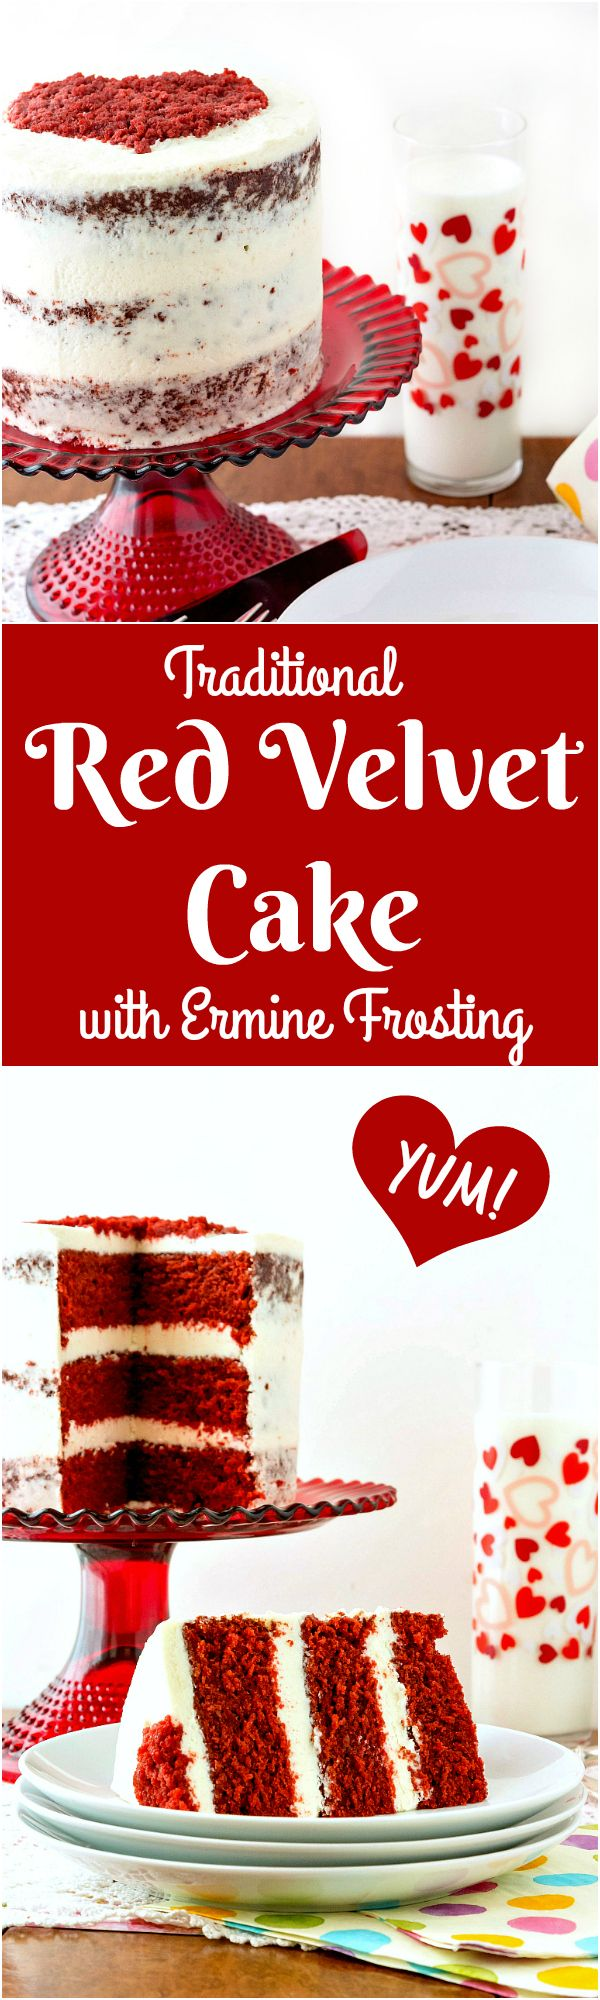 This traditional red velvet cake with ermine frosting is the perfect Valentine's Cake recipe. Make one for your sweetie. You'll love the smooth and creamy ermine frosting!   pastrychefonline.com